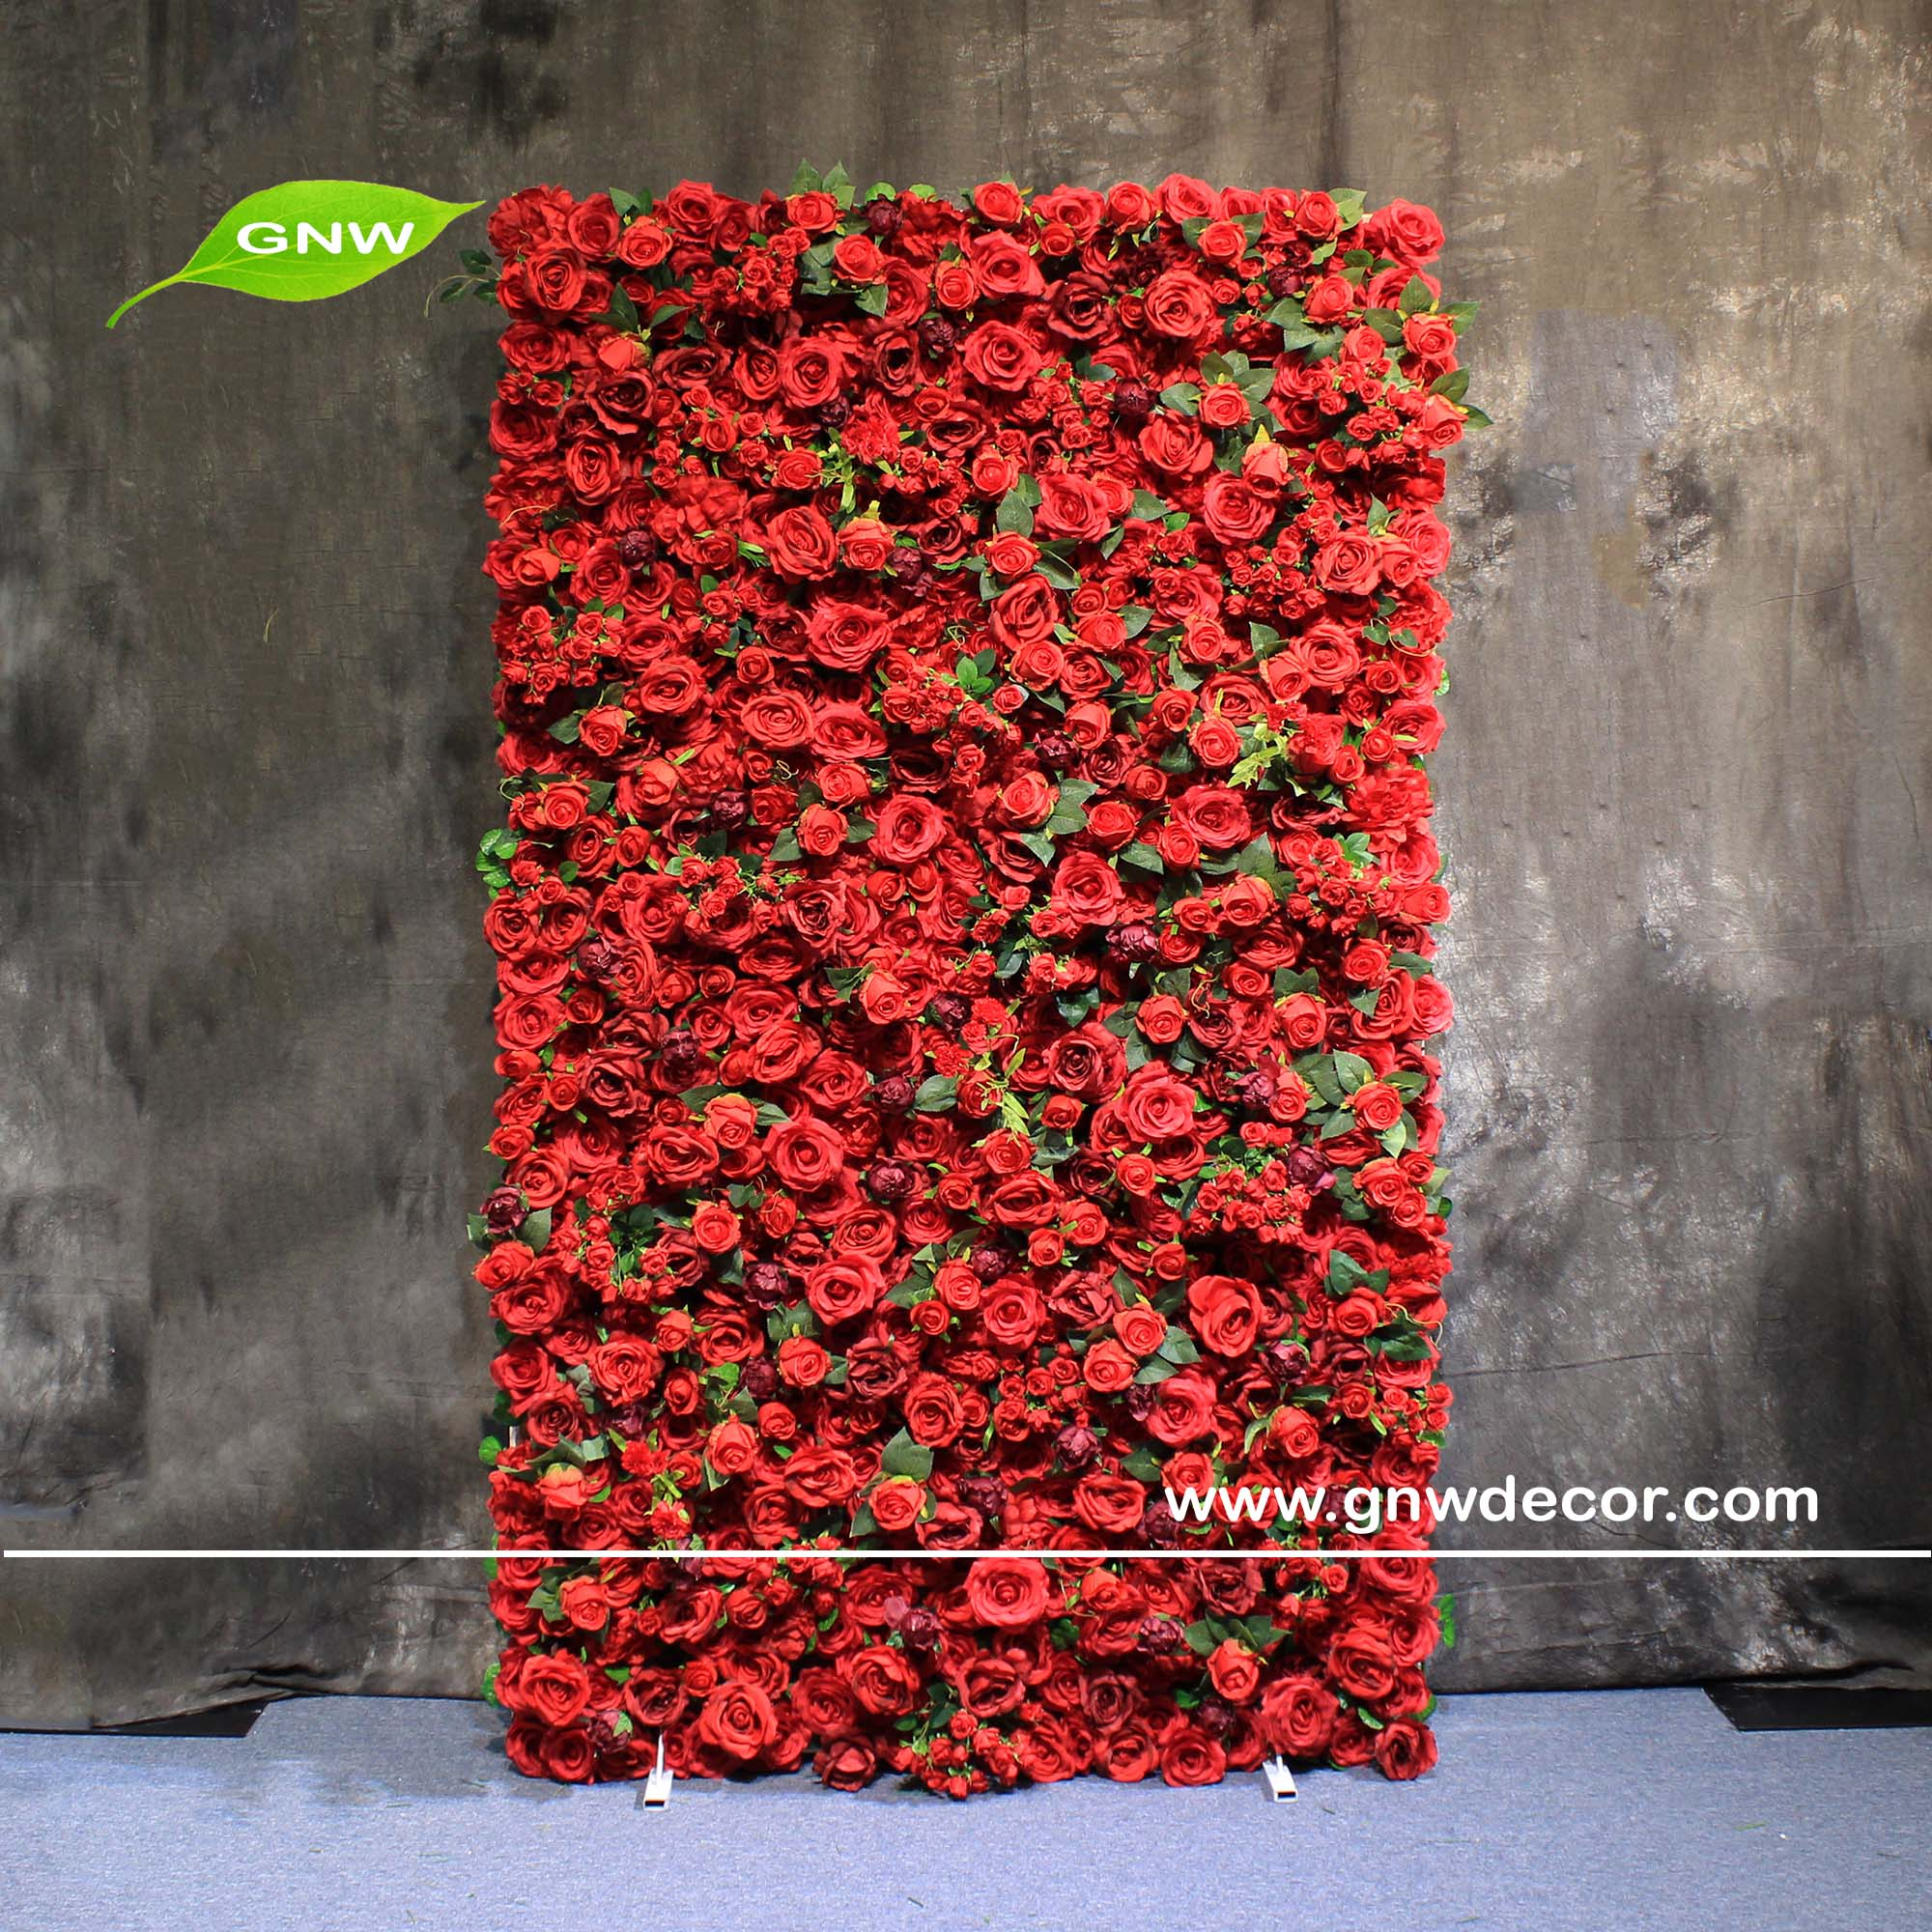 Gnw China Manufacturer Wedding Decor Backdrop Red Flower Artificial Wall For Restaurant Wall Decoration Clothing Roll Up Wall View Roll Up Clothing Wedding Wall Gnw Product Details From Gnw Technology Co Ltd